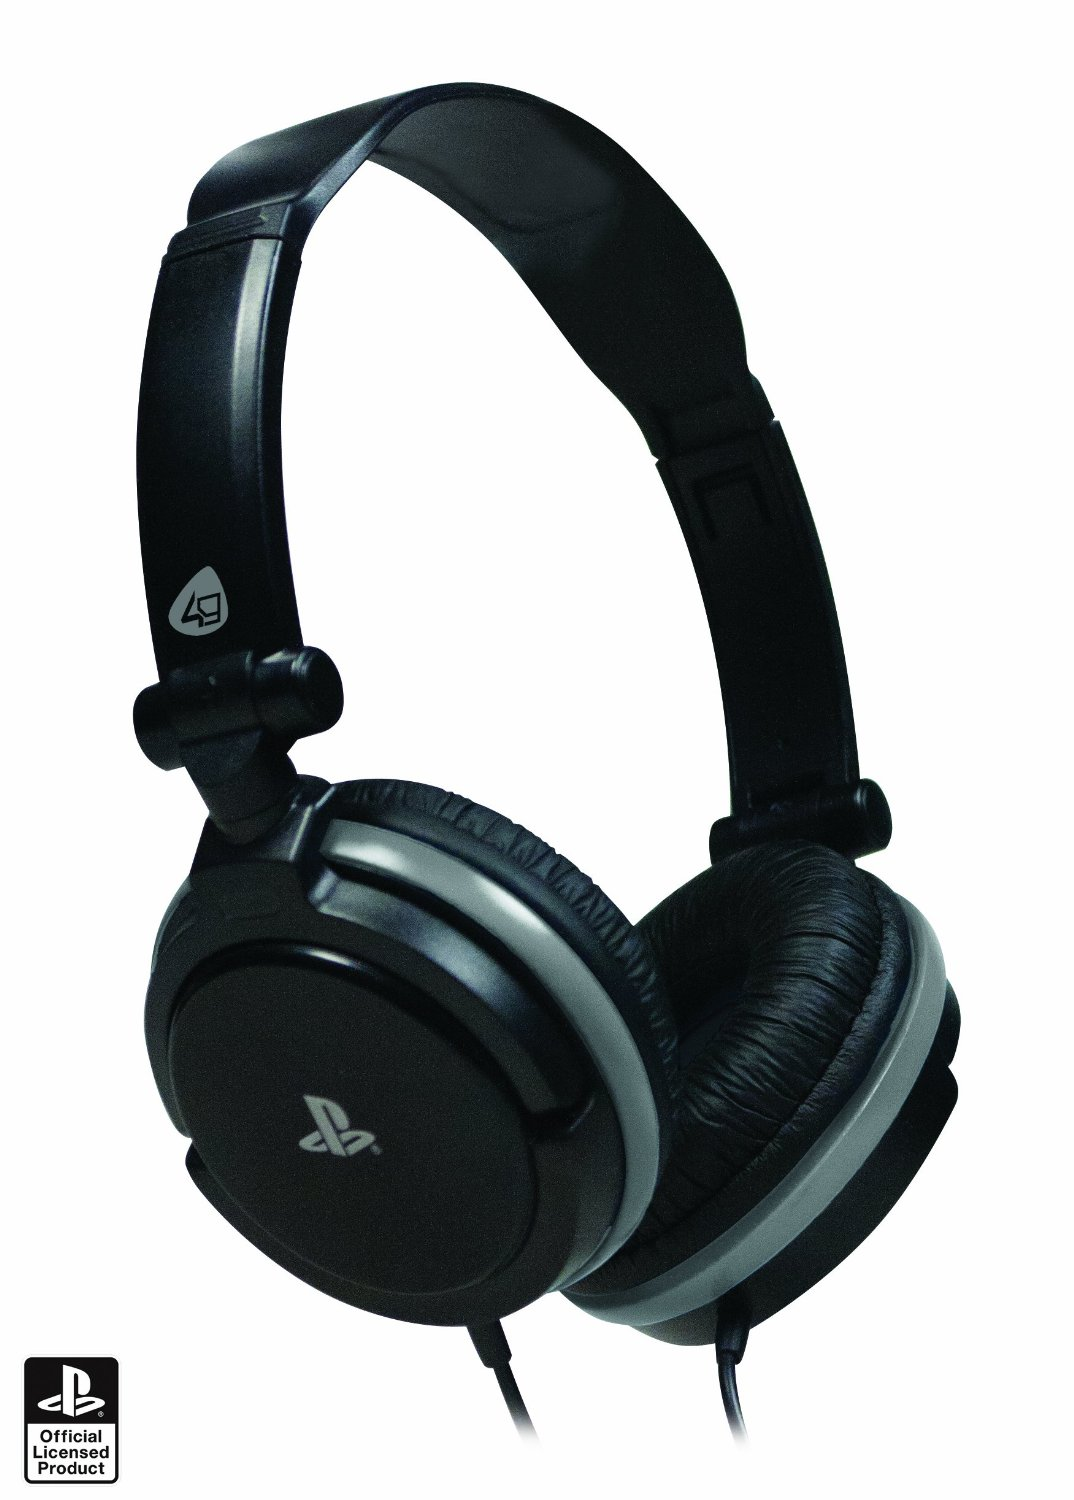 officially sony licensed stereo gaming headset playstation. Black Bedroom Furniture Sets. Home Design Ideas